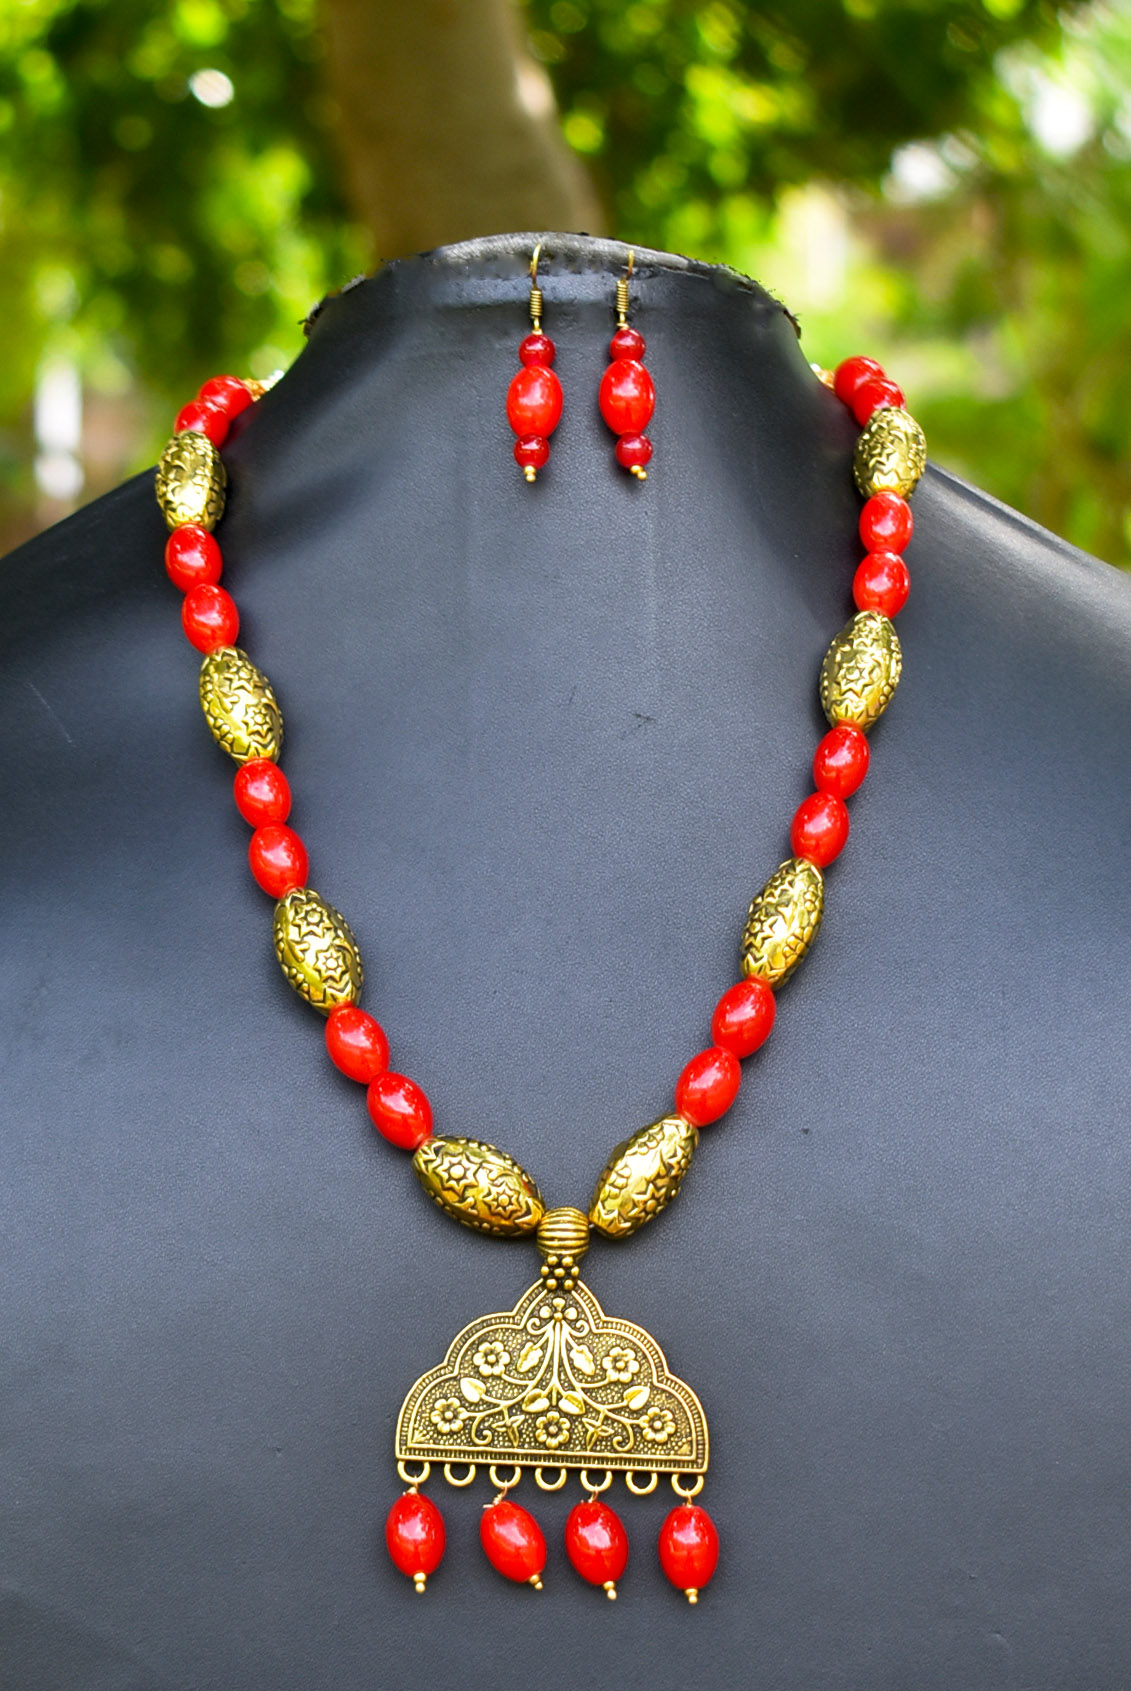 Tribal Ethnic Beaded Golden Necklace Set